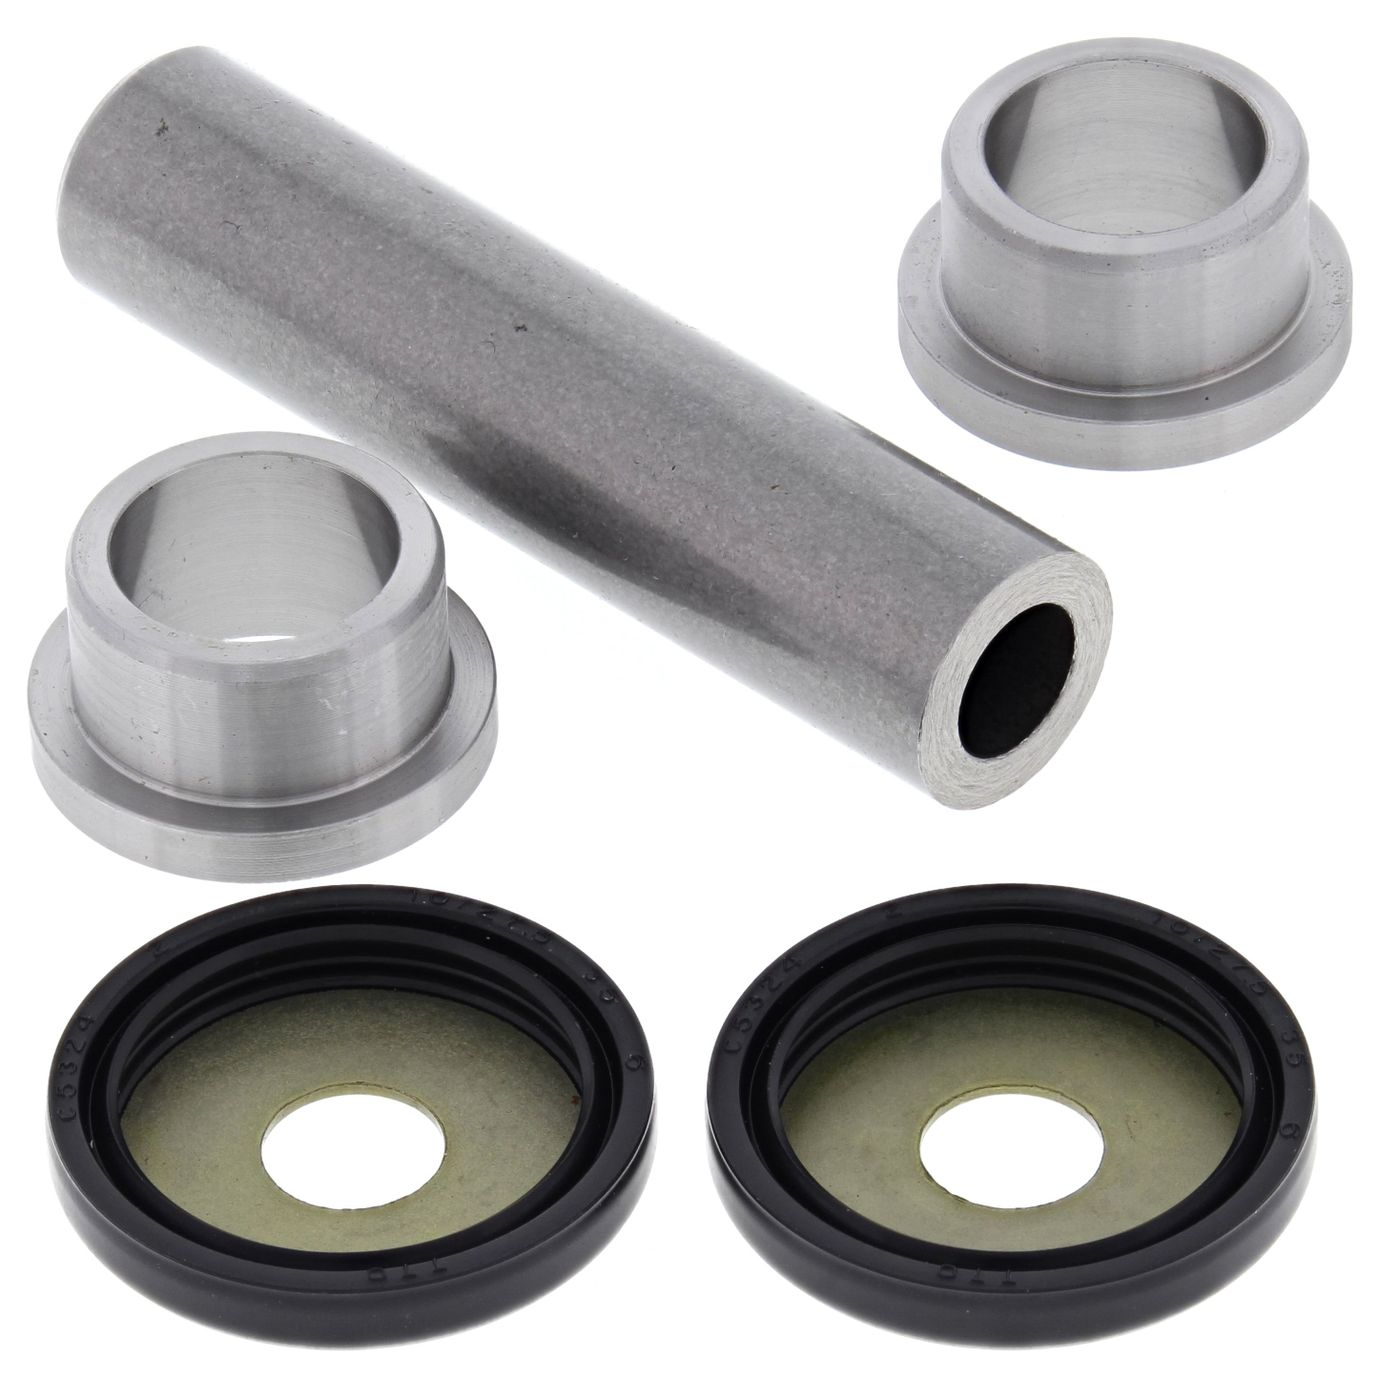 wrp stub axle repair kit - WRP421002 image